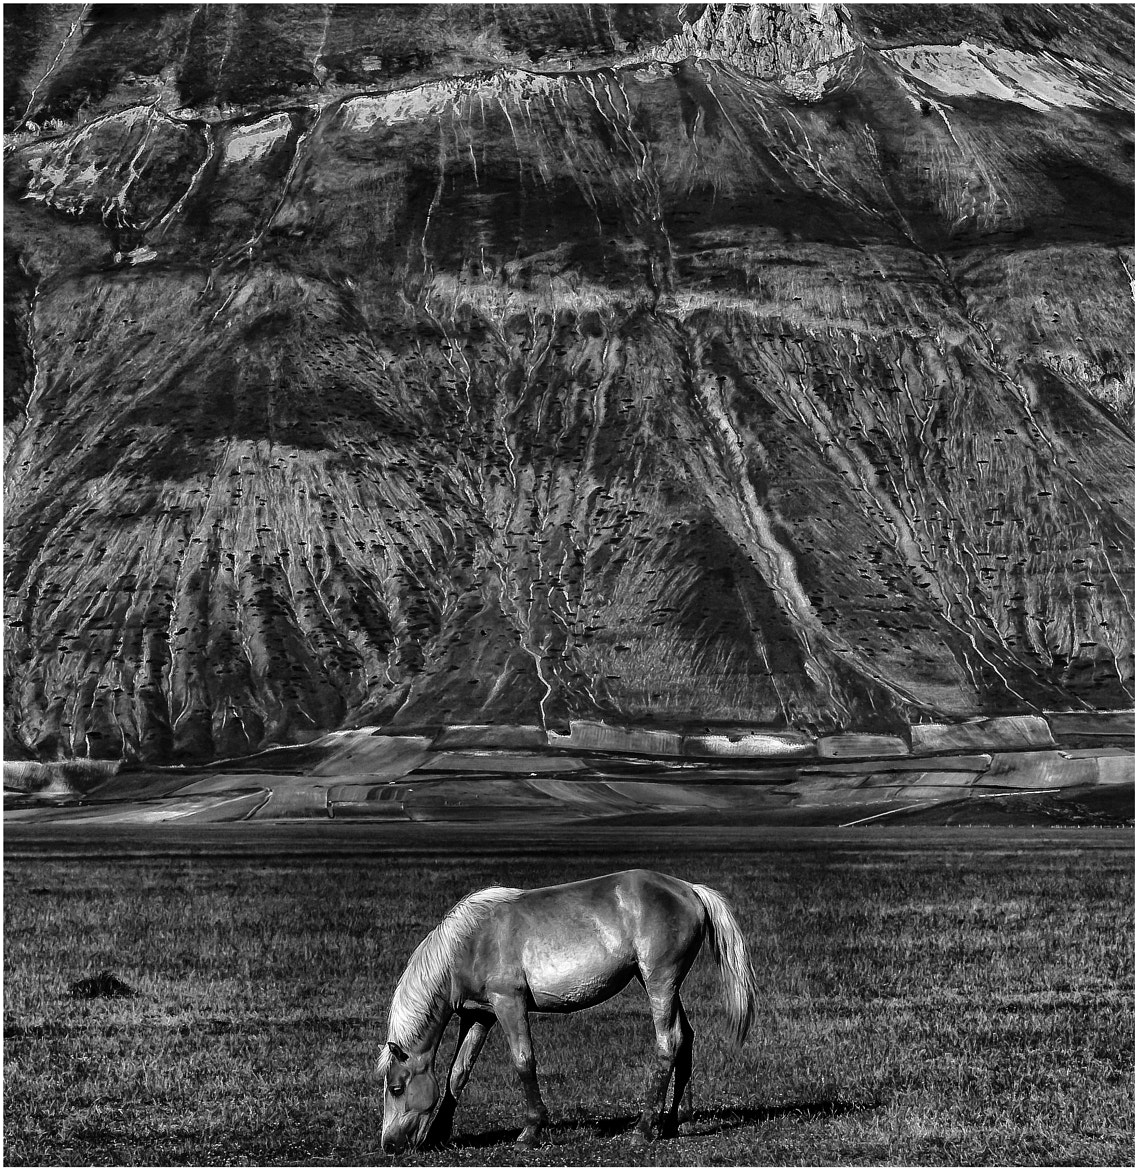 Photograph The horse by Roberto Paglianti on 500px